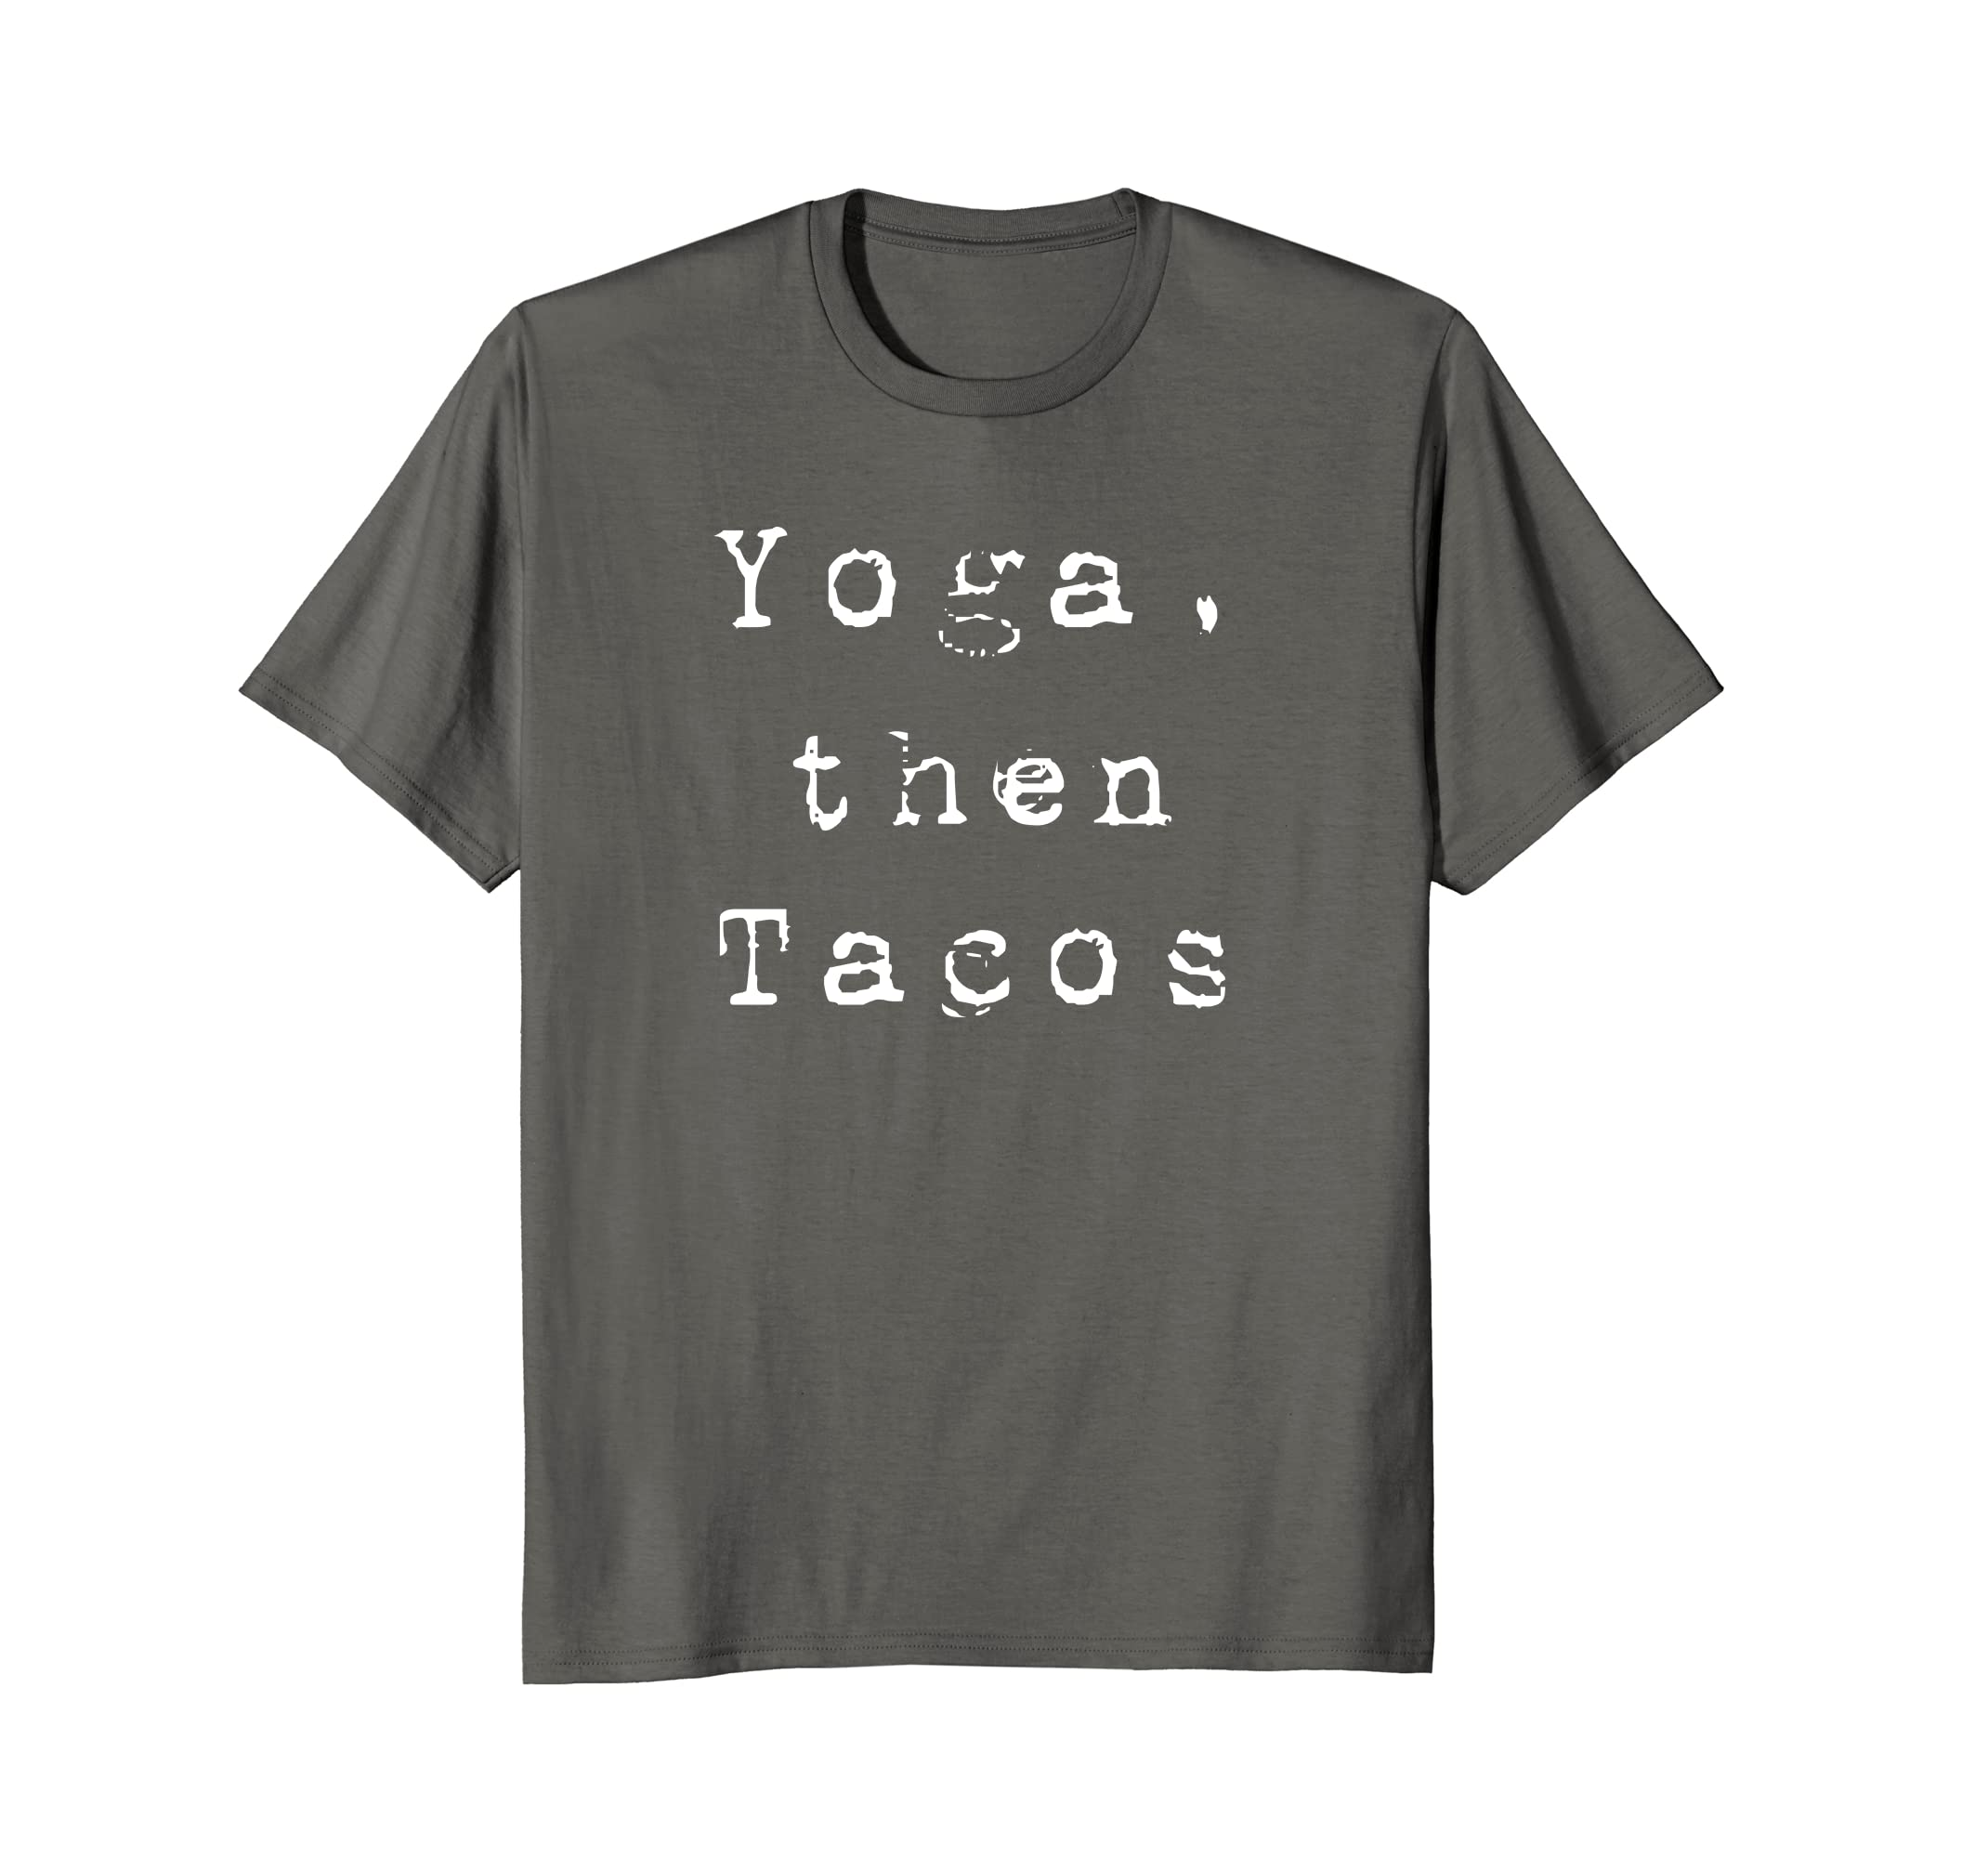 83bf07df Amazon.com: Yoga, then Tacos Tee for the taco loving yoga enthusiast:  Clothing